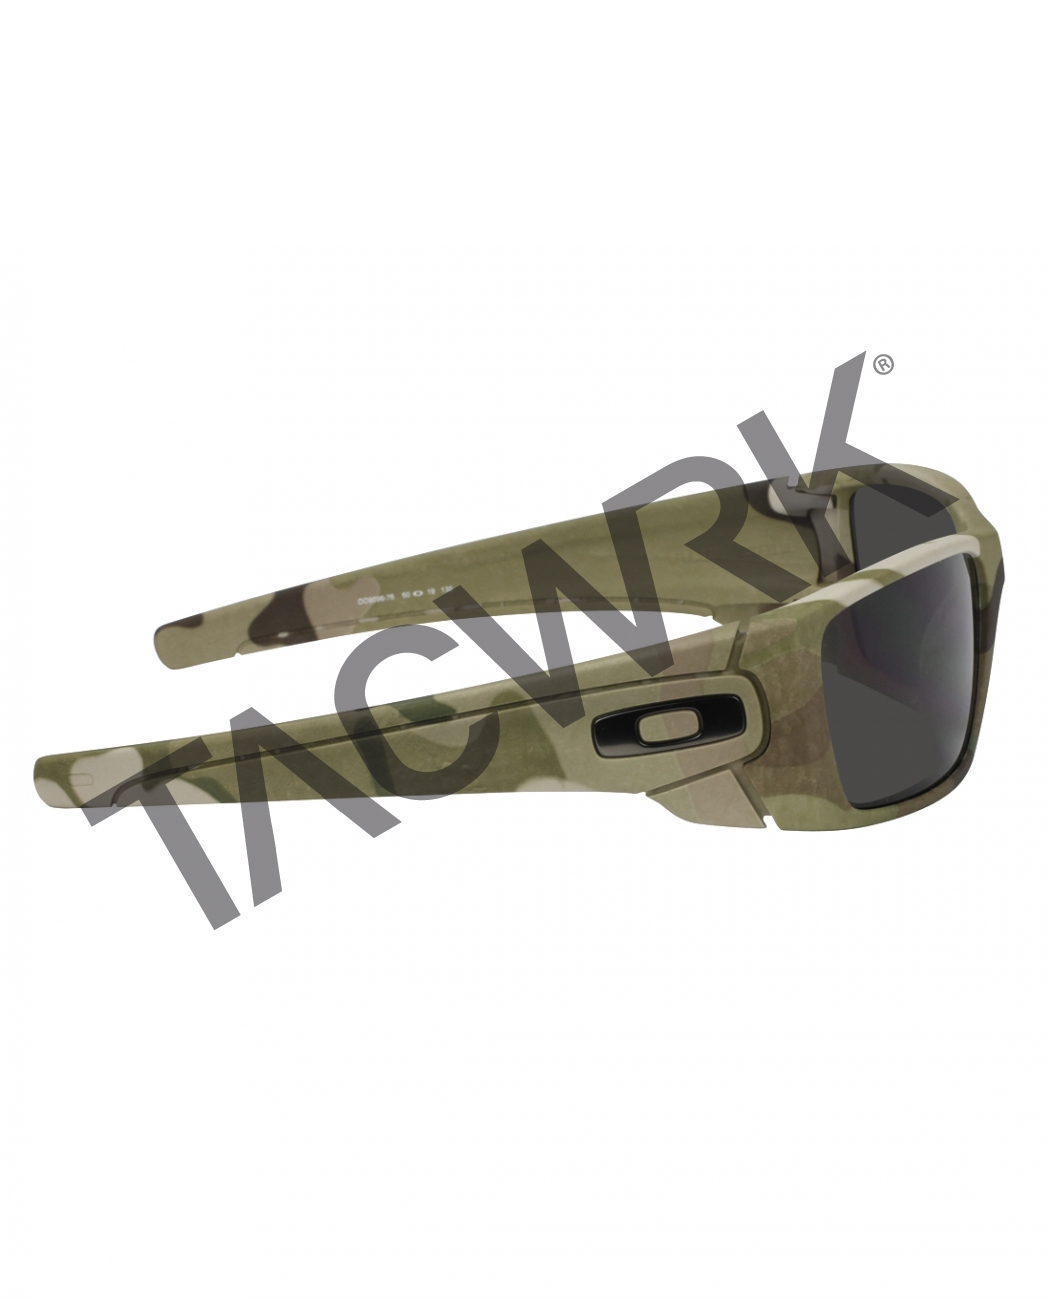 oakley z87 stamped safety glasses  oakley z87 stamped safety glasses